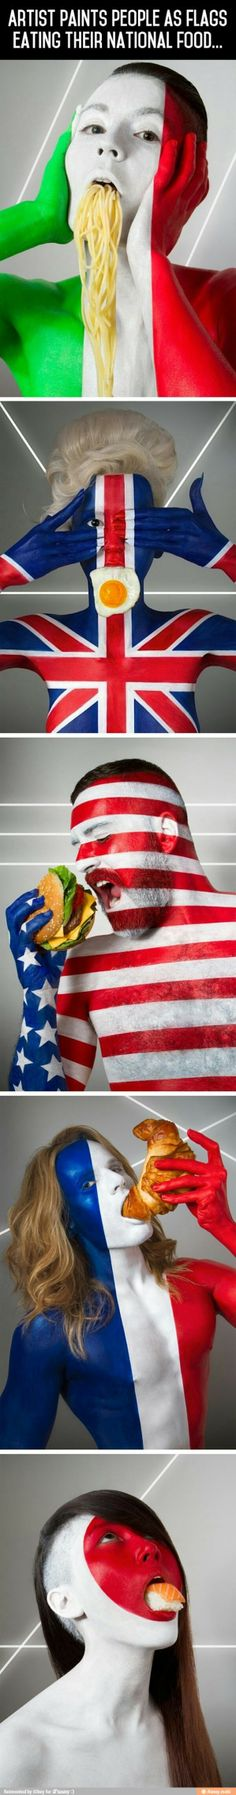 Artist Paints People As Flags Eating Their National Food | Laugh Out Loud